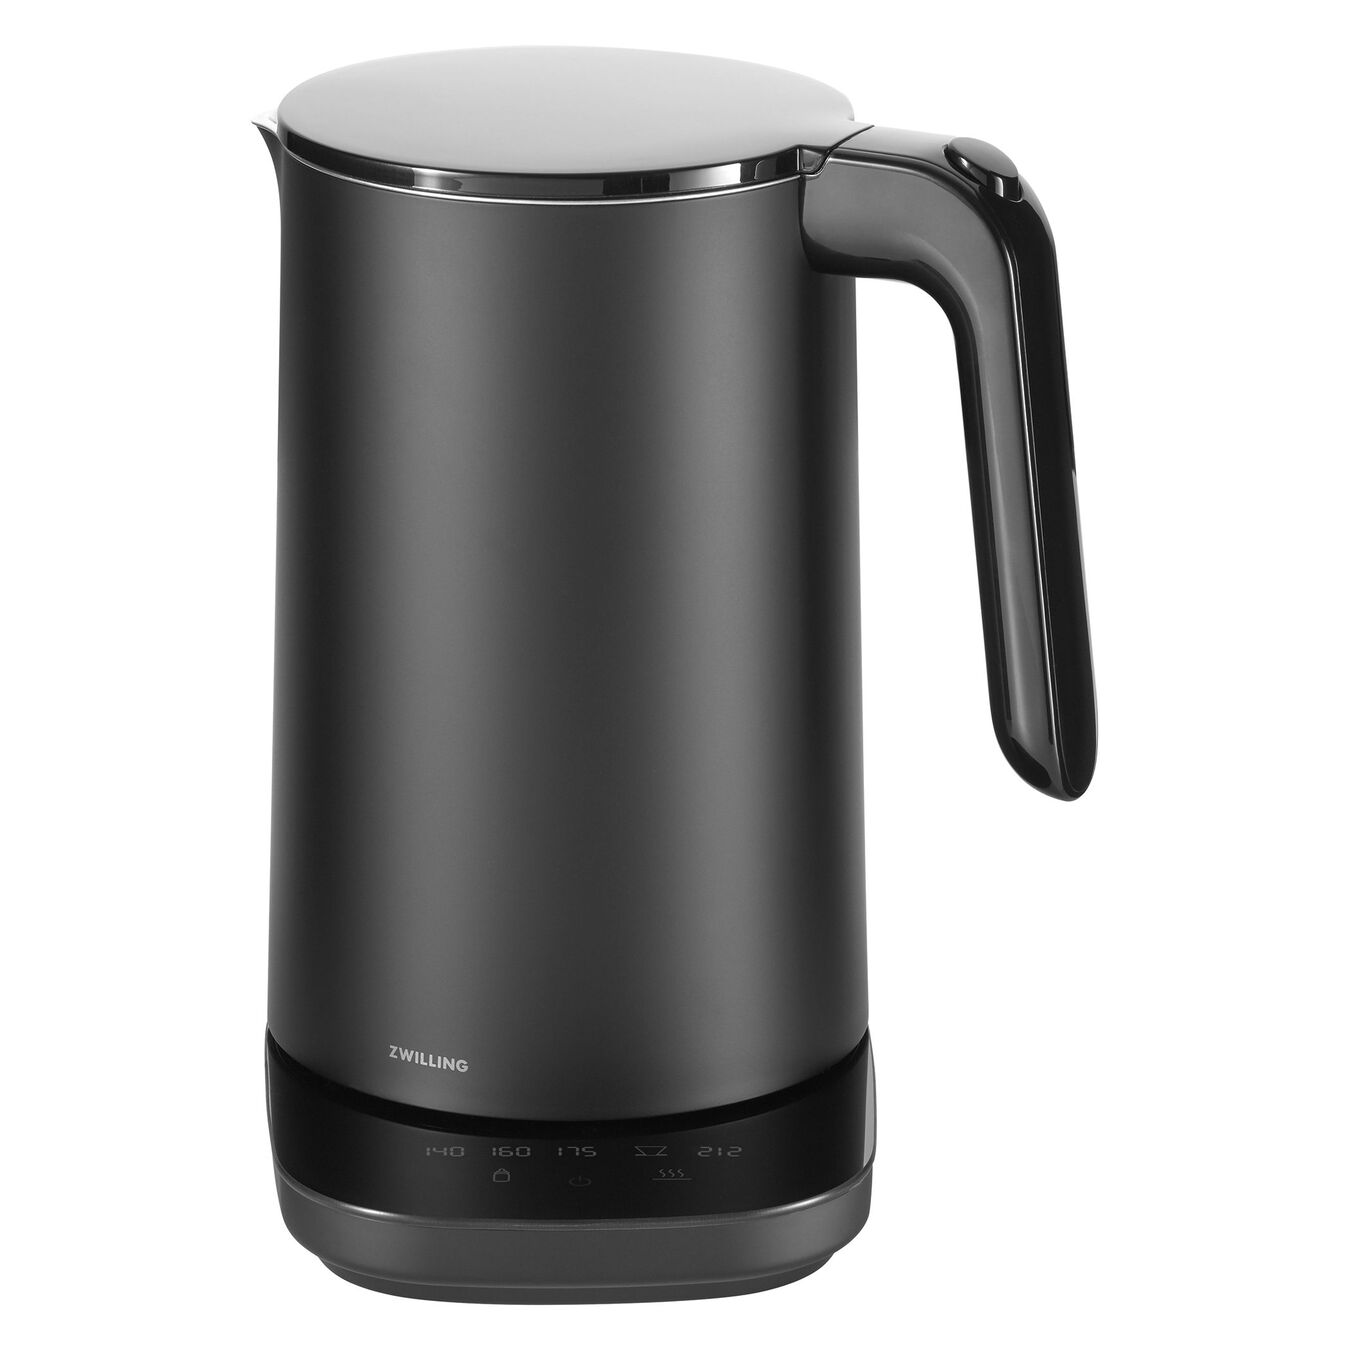 Cool Touch Kettle Pro - Black,,large 1